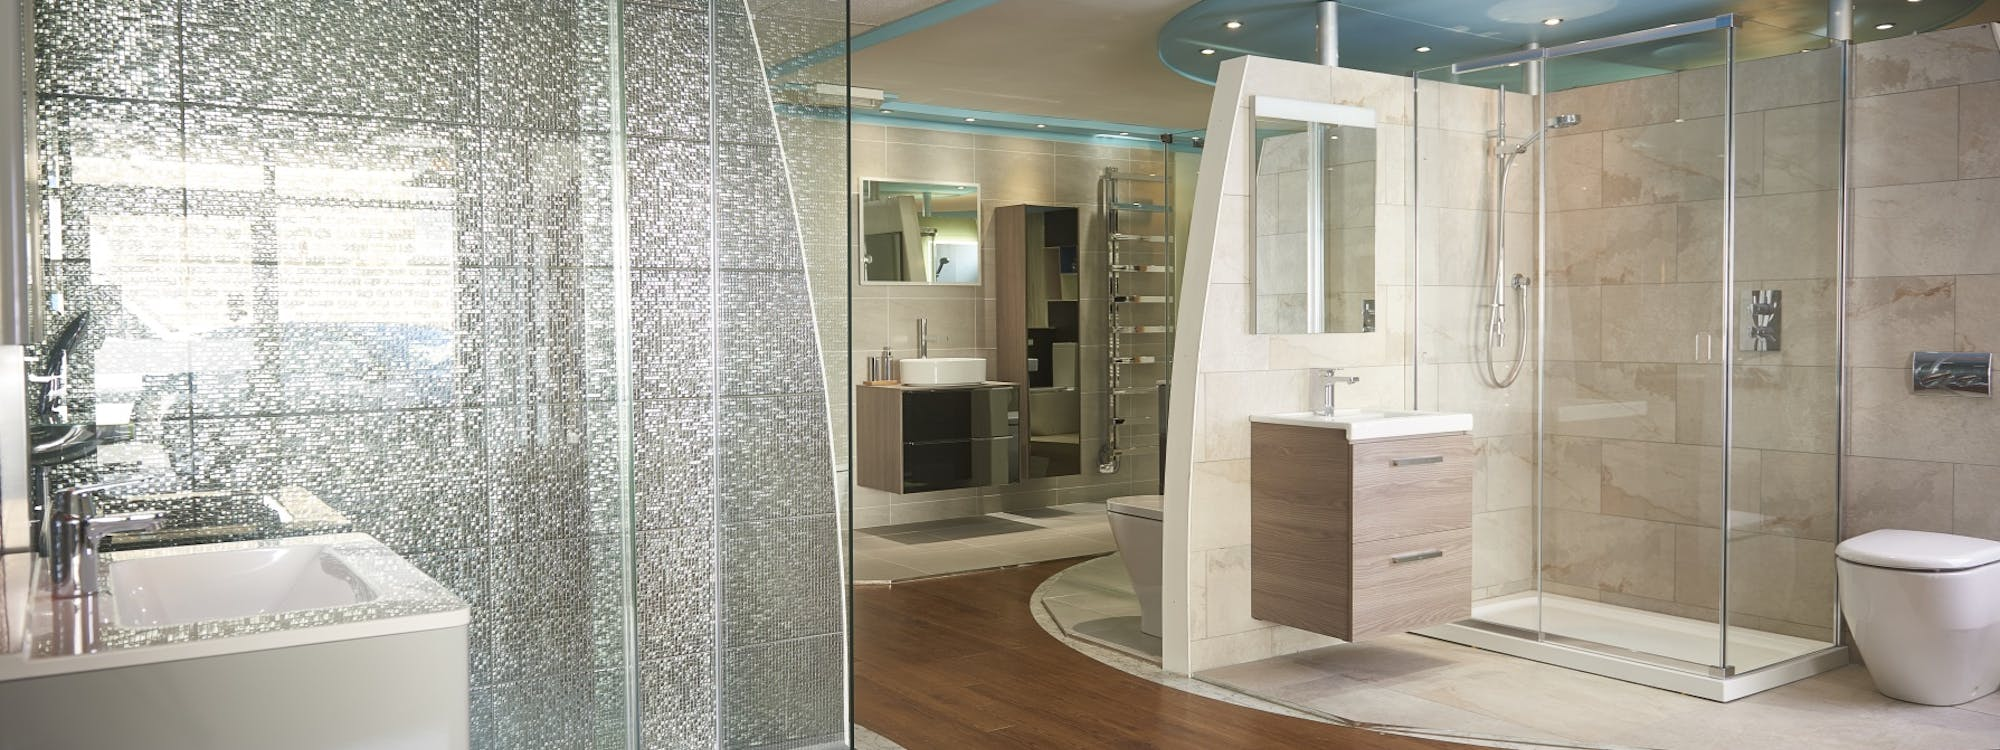 With over 350 products on display you'll find everything you want at our Harrogate Bathroom Showroom.